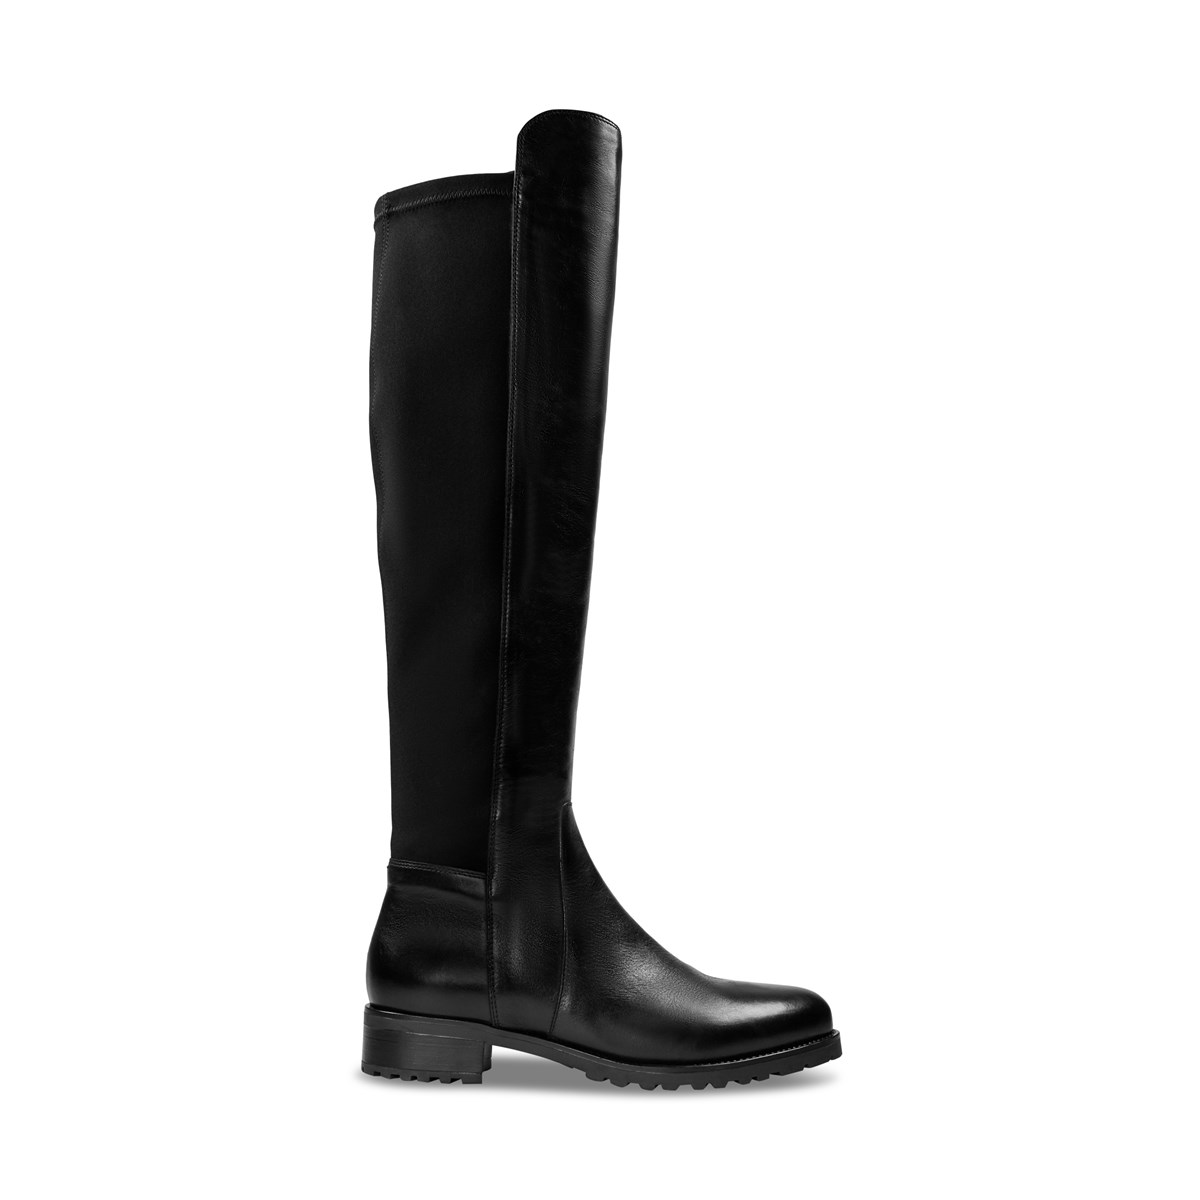 Women's Jade Over The Knee Boots in Black